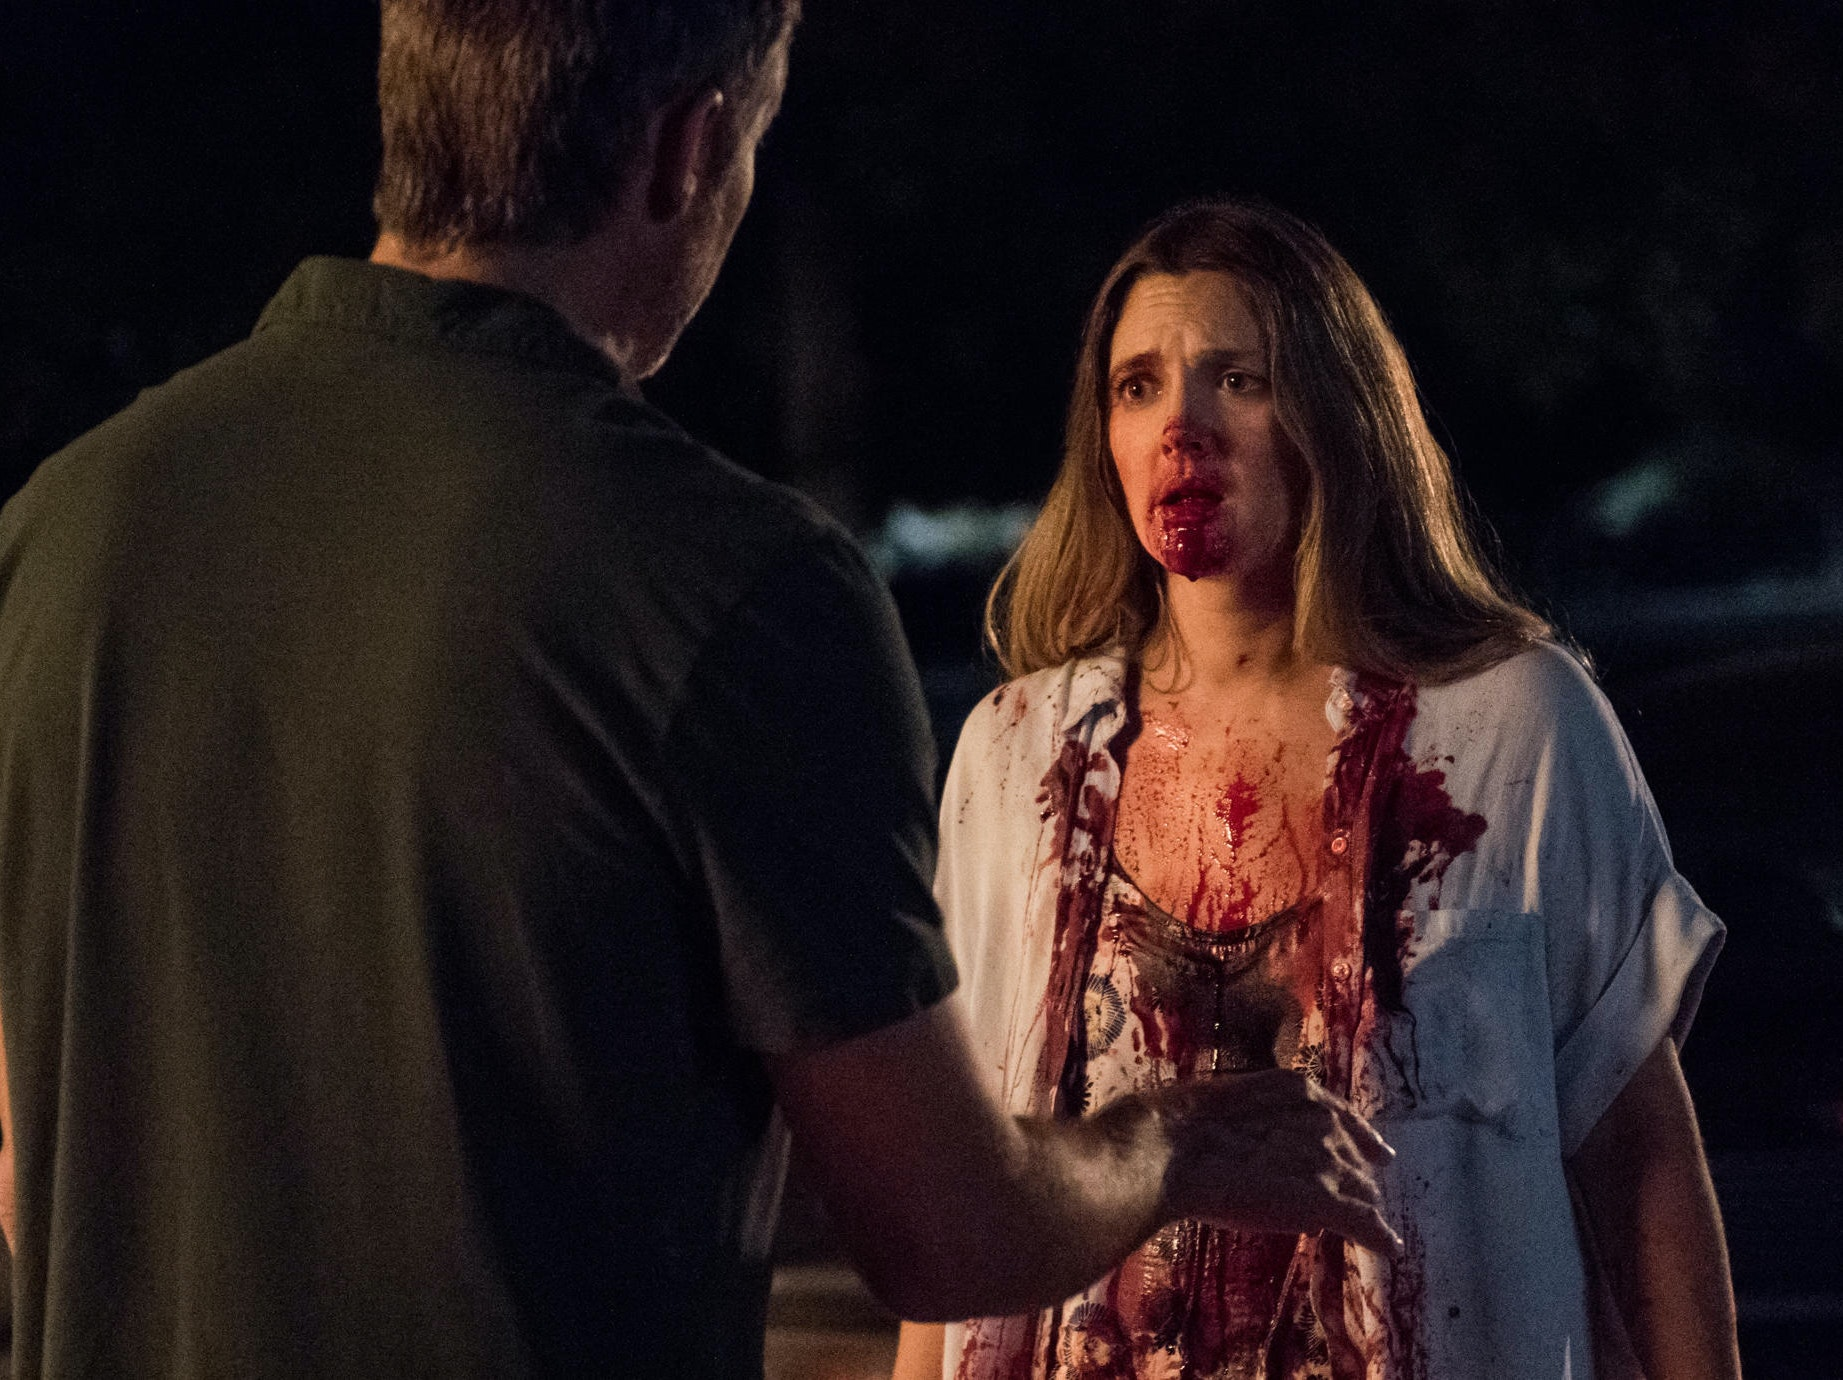 'Santa Clarita Diet' Is Disturbingly Cheery About Cannibalism